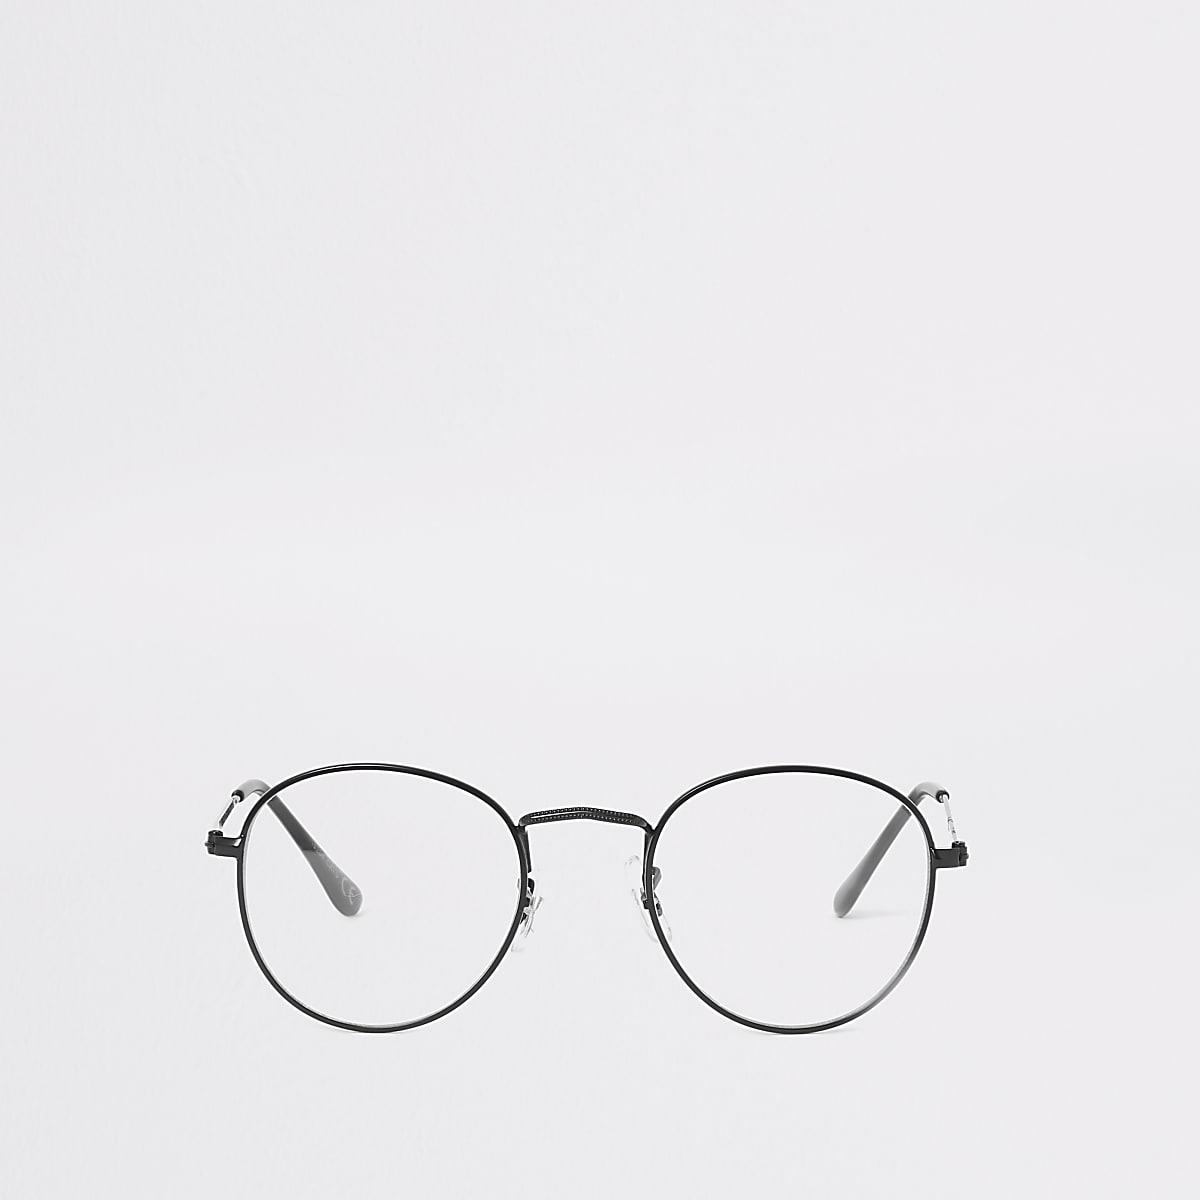 Black round clear lens glasses